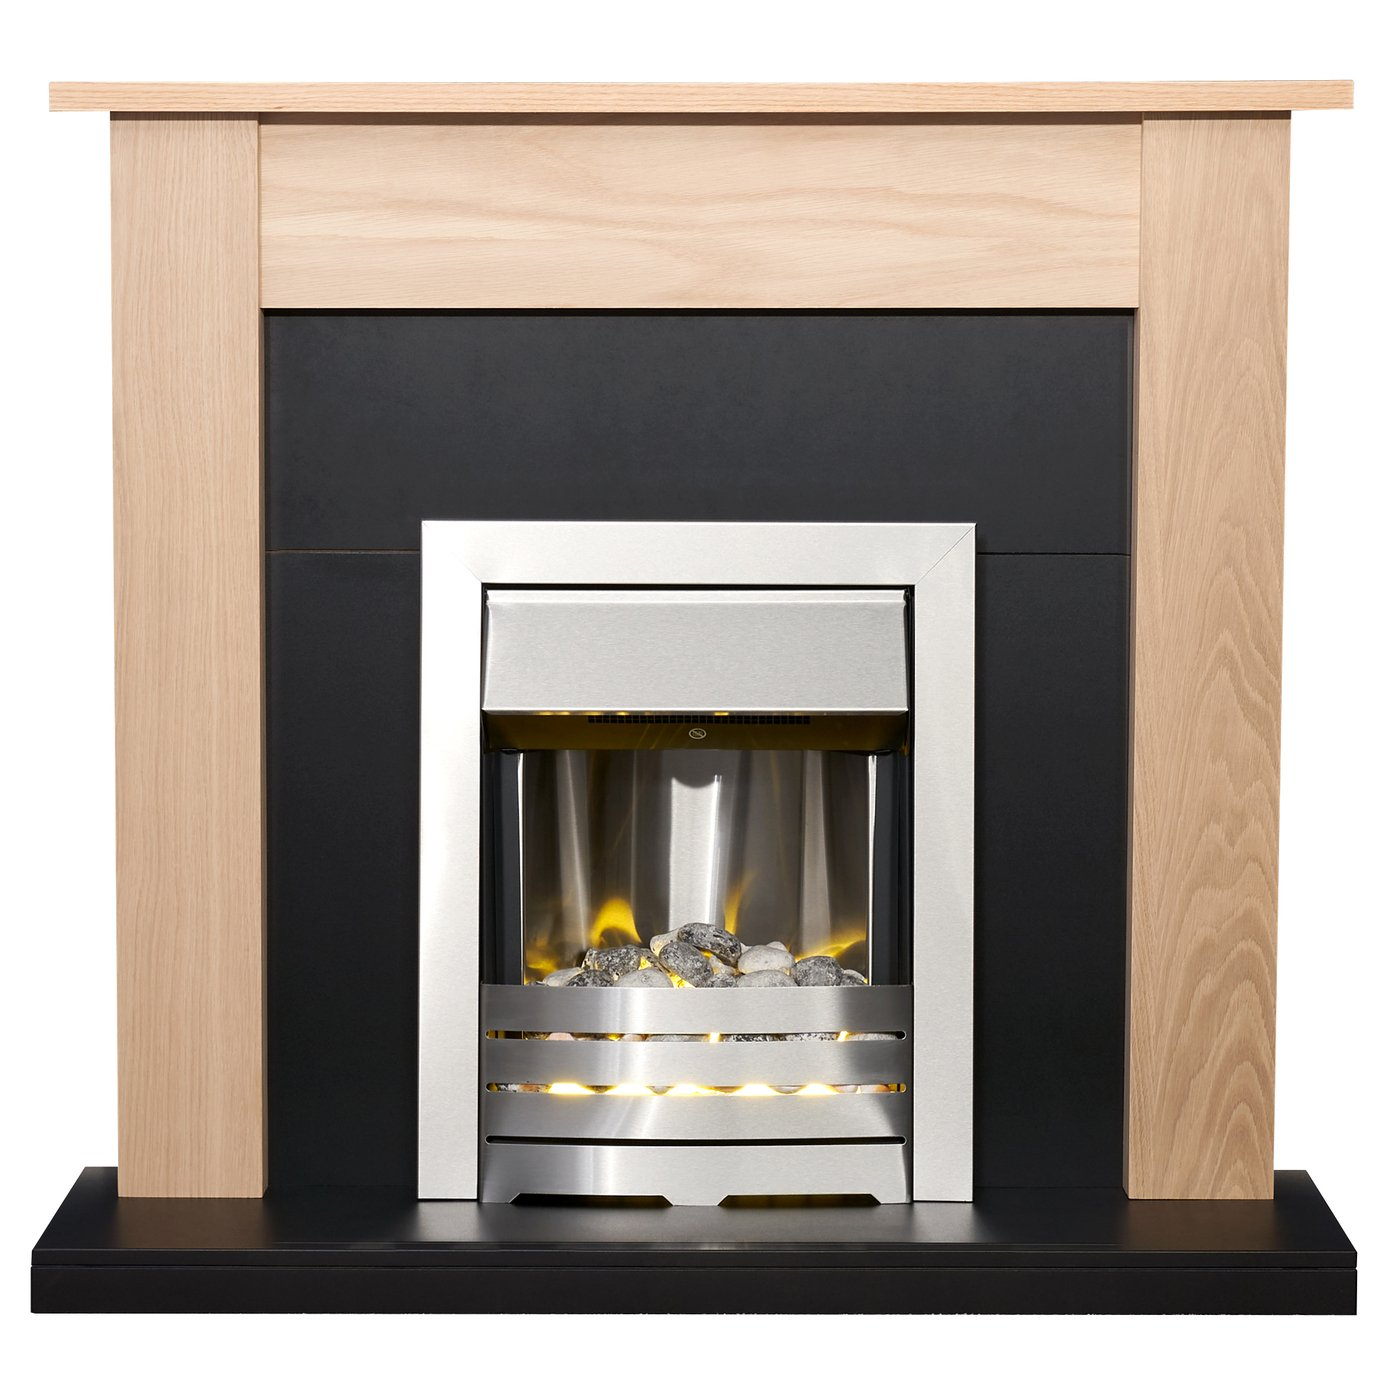 Adam Southwold Surround with Helios 2kW Electric Fire Suite